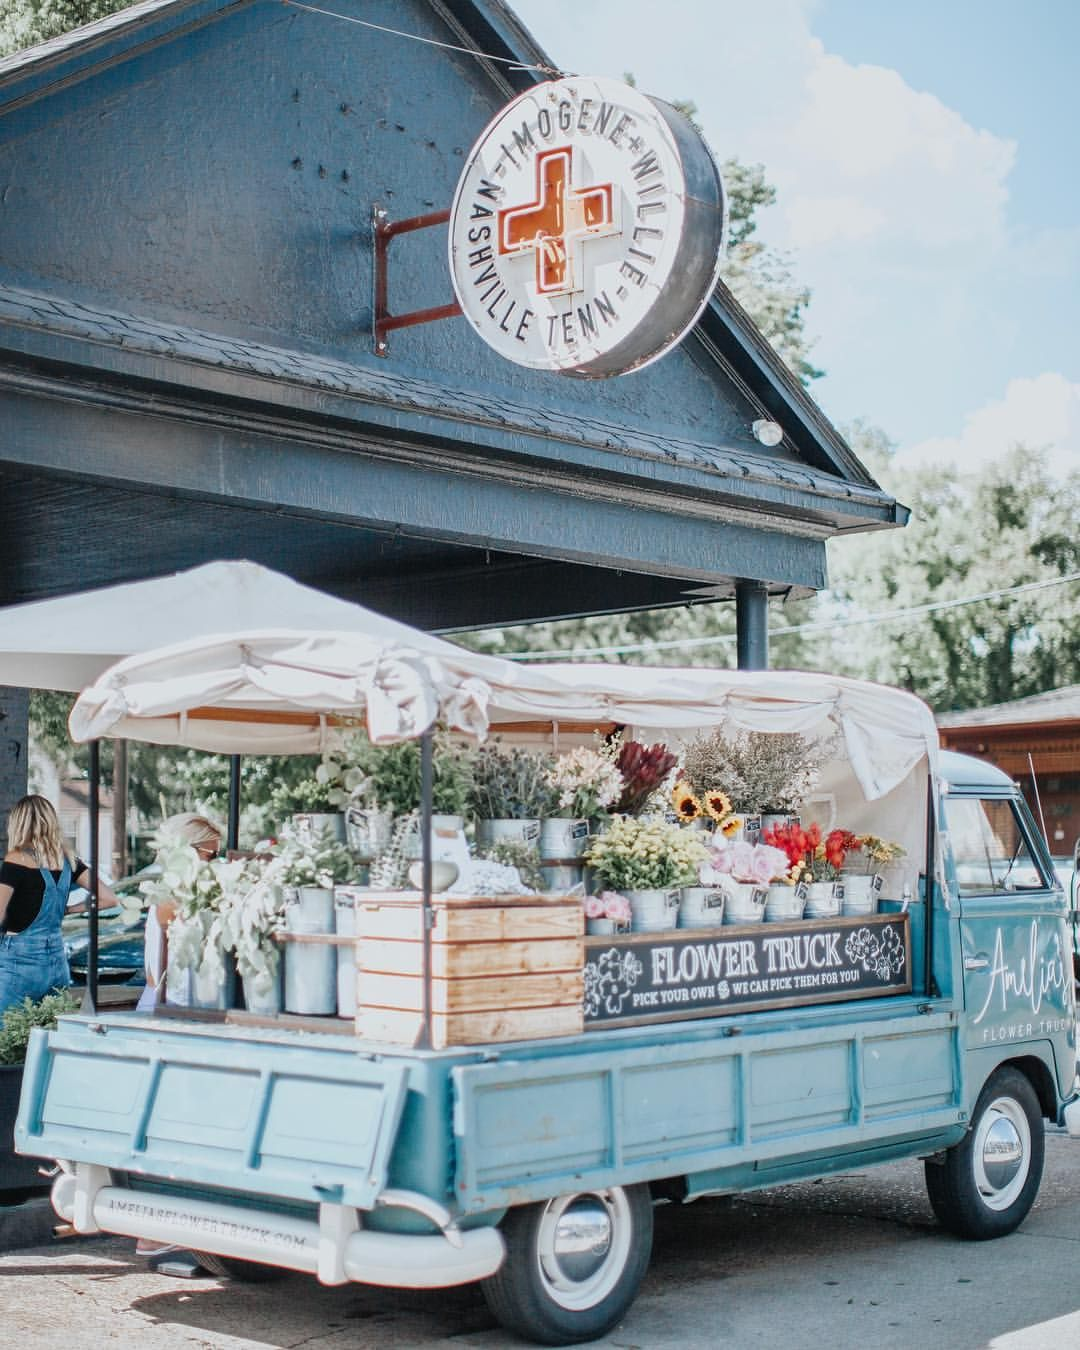 637 Likes, 2 Comments Amelia's Flower Truck